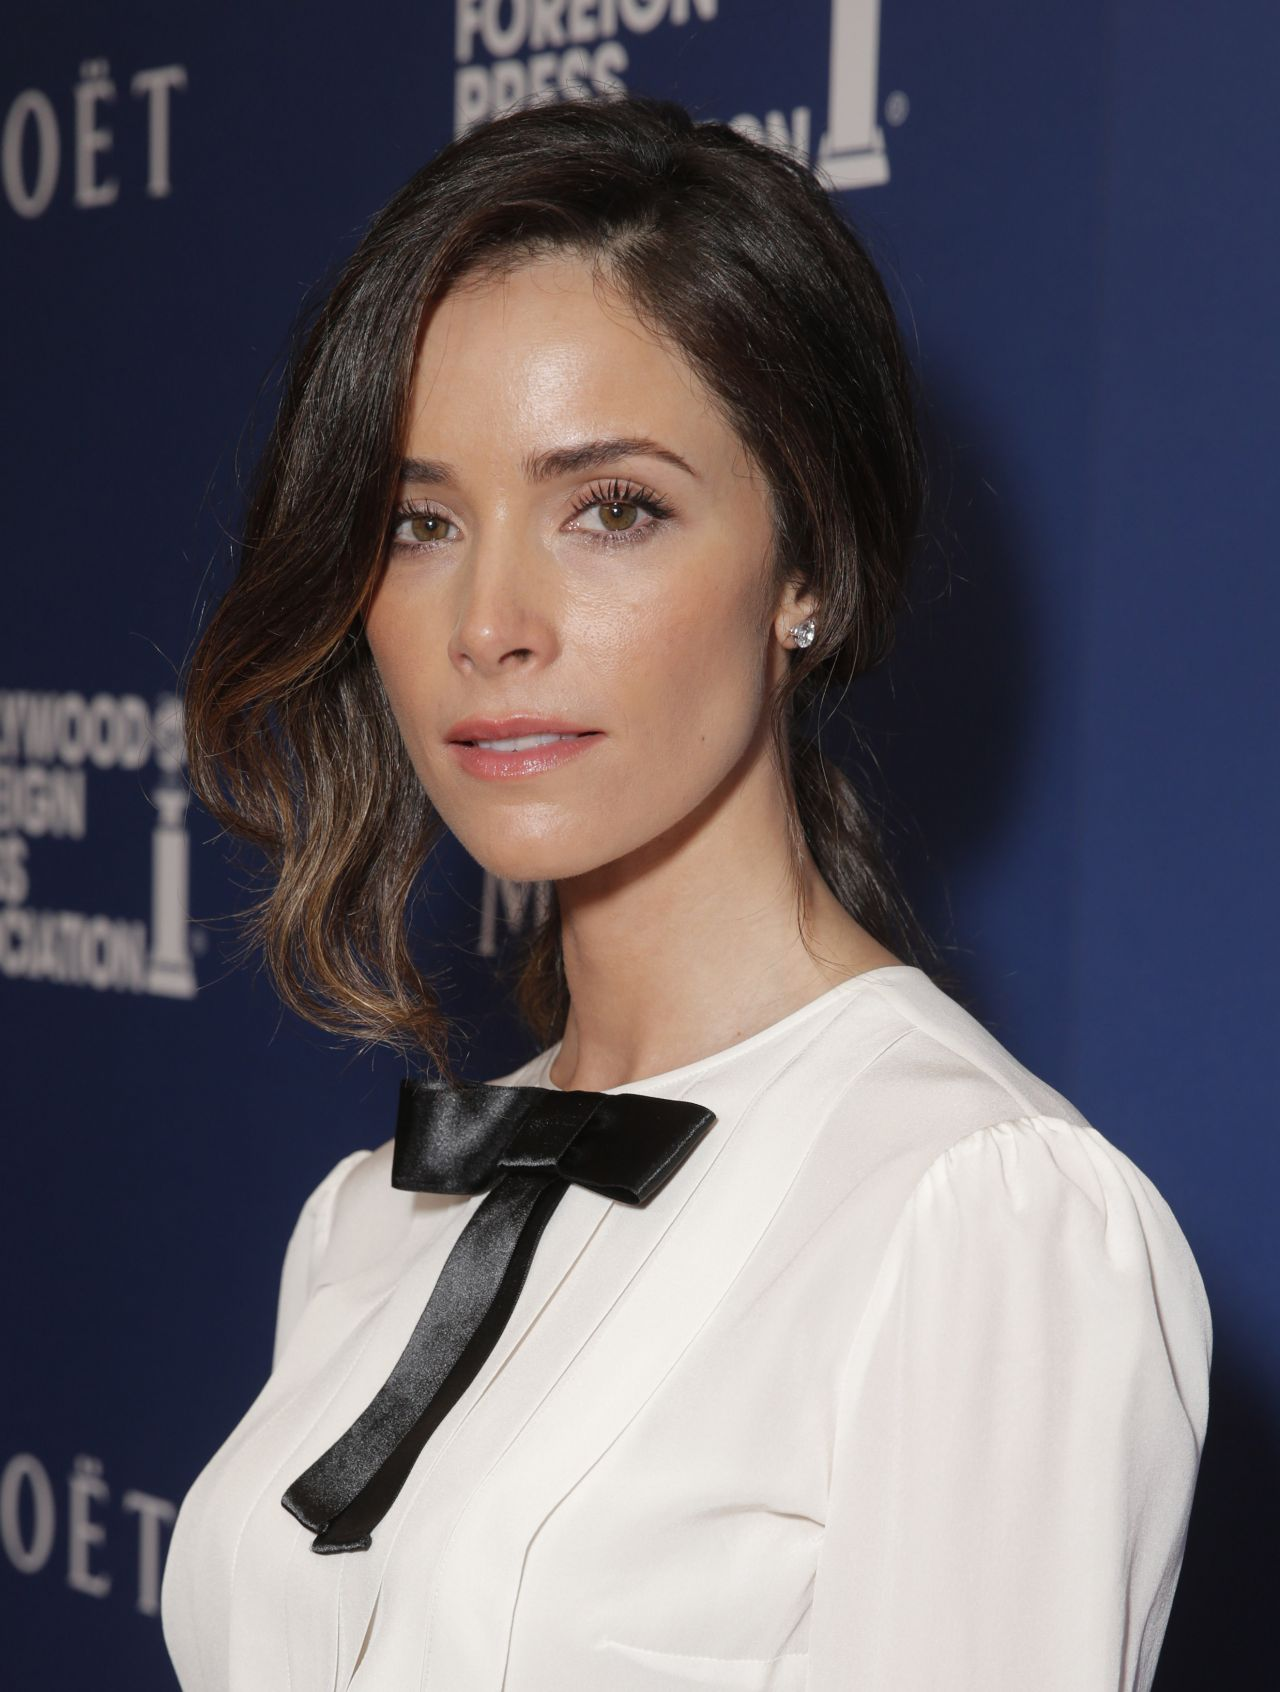 abigail spencer фото